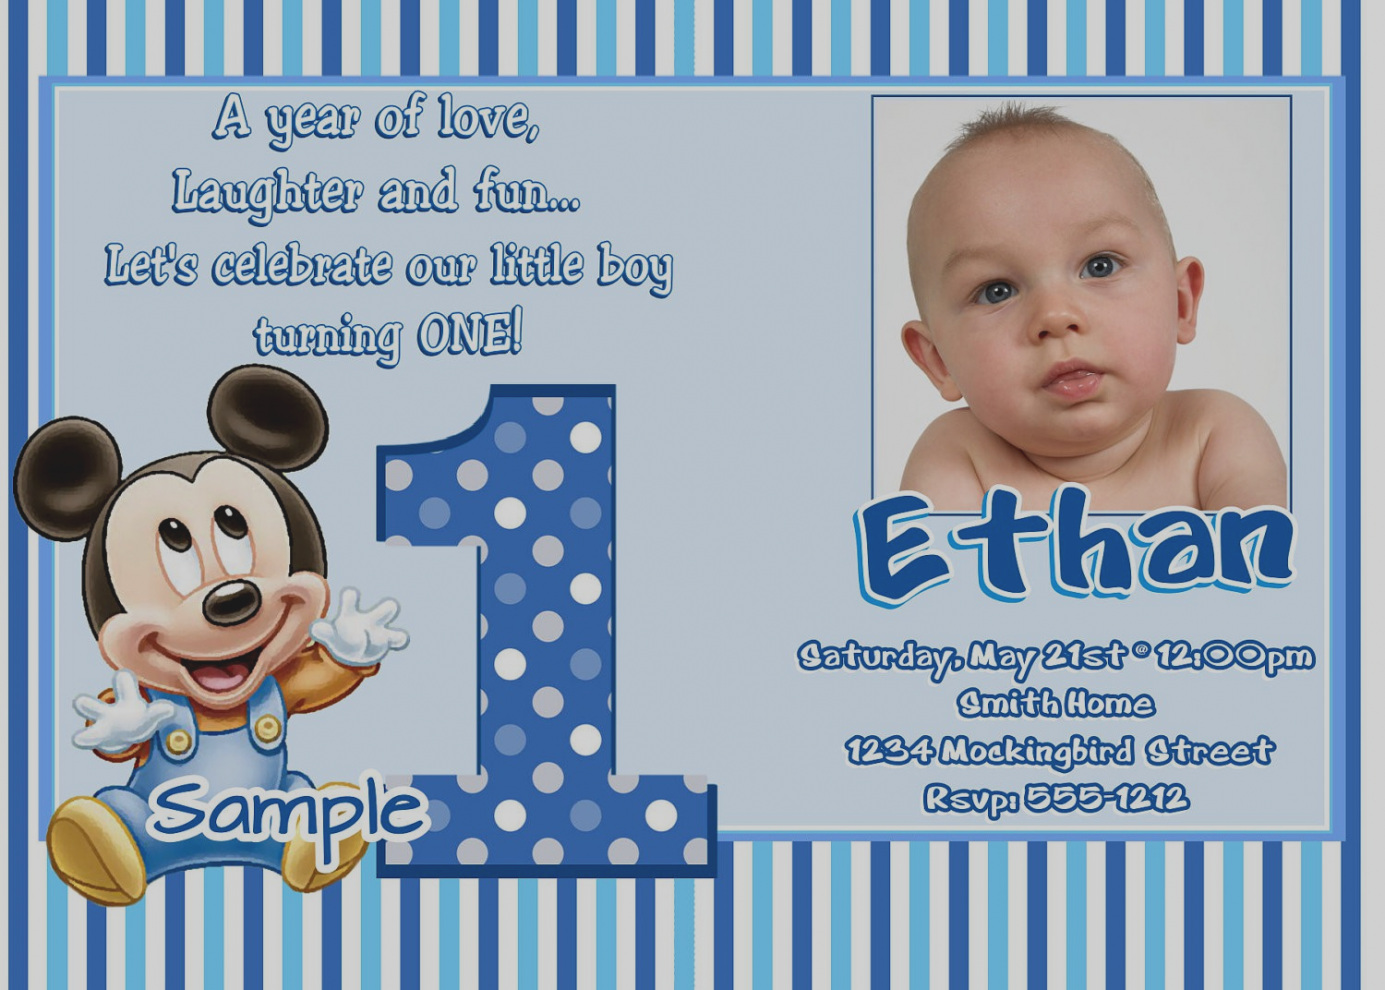 baby first birthday invitation templates free ; elegant-baby-first-birthday-invitation-templates-free-cloudinvitation-com